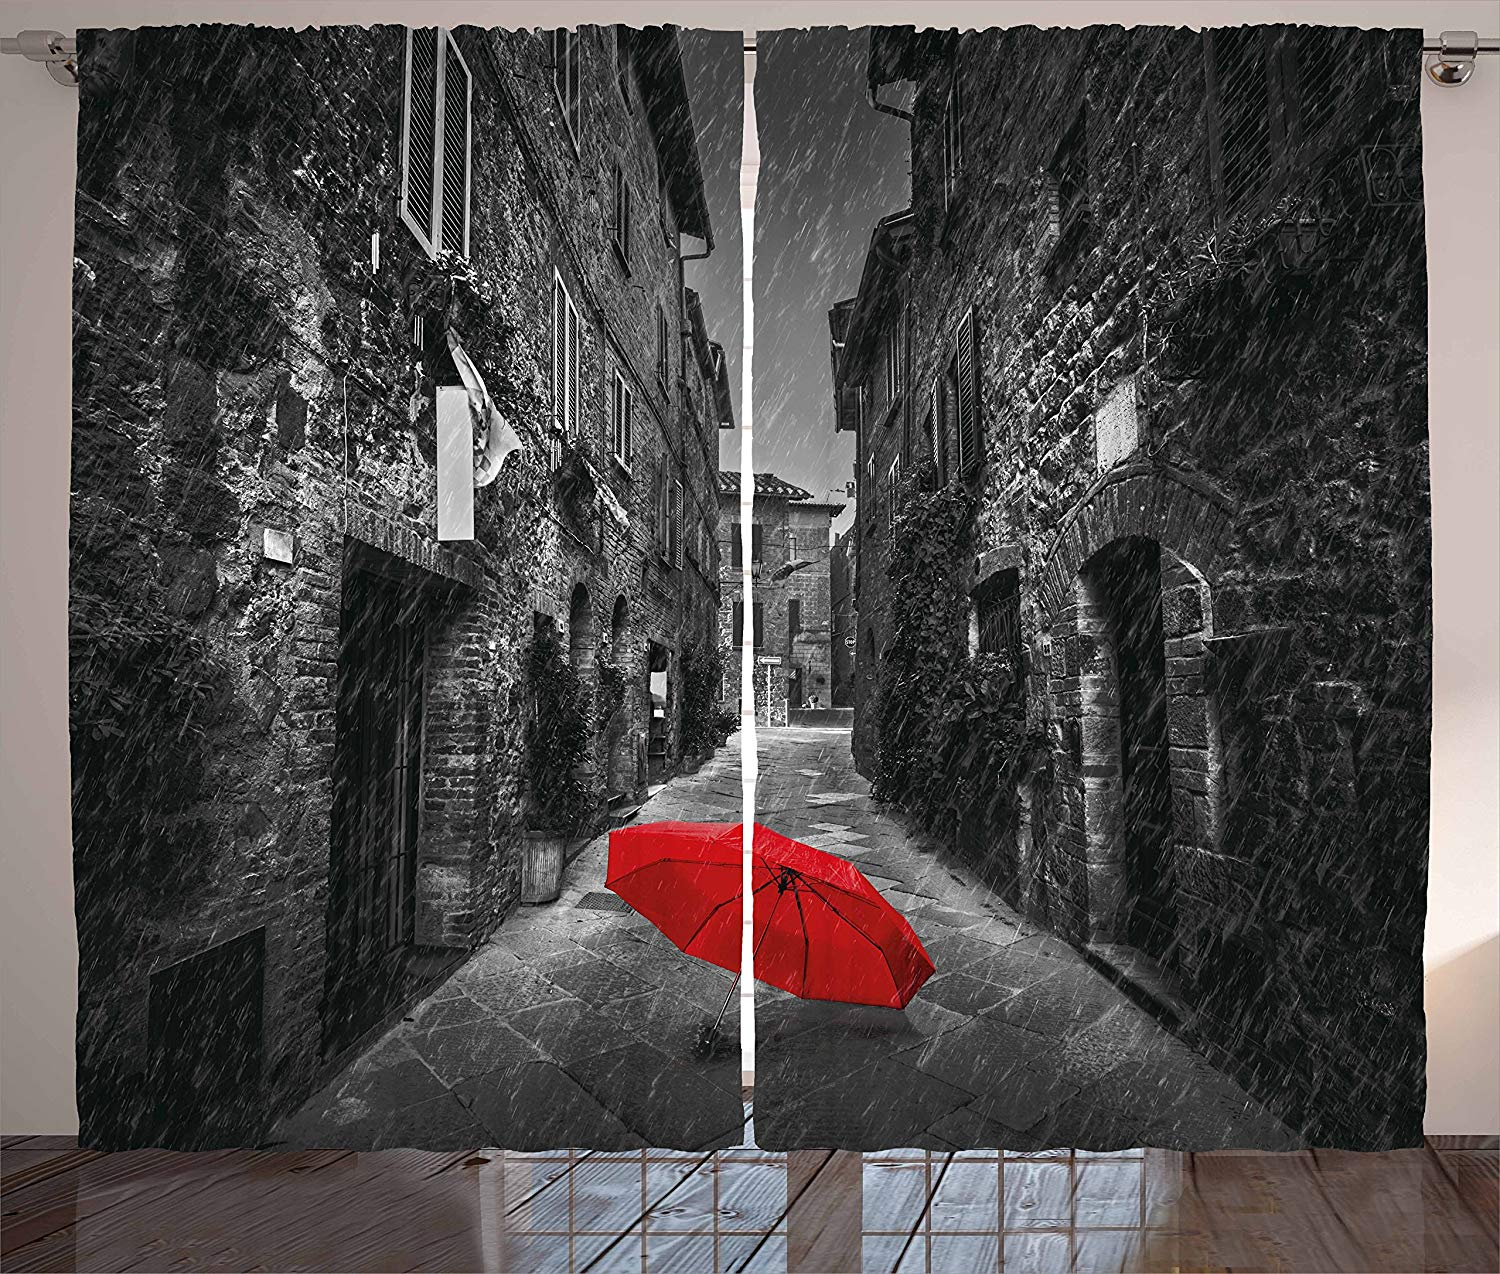 Marvelous Us 12 72 20 Off Black And White Kitchen Curtains Red Umbrella On A Dark Narrow Street In Tuscany Italy Rainy Winter Window Decor Panel Set In Download Free Architecture Designs Grimeyleaguecom